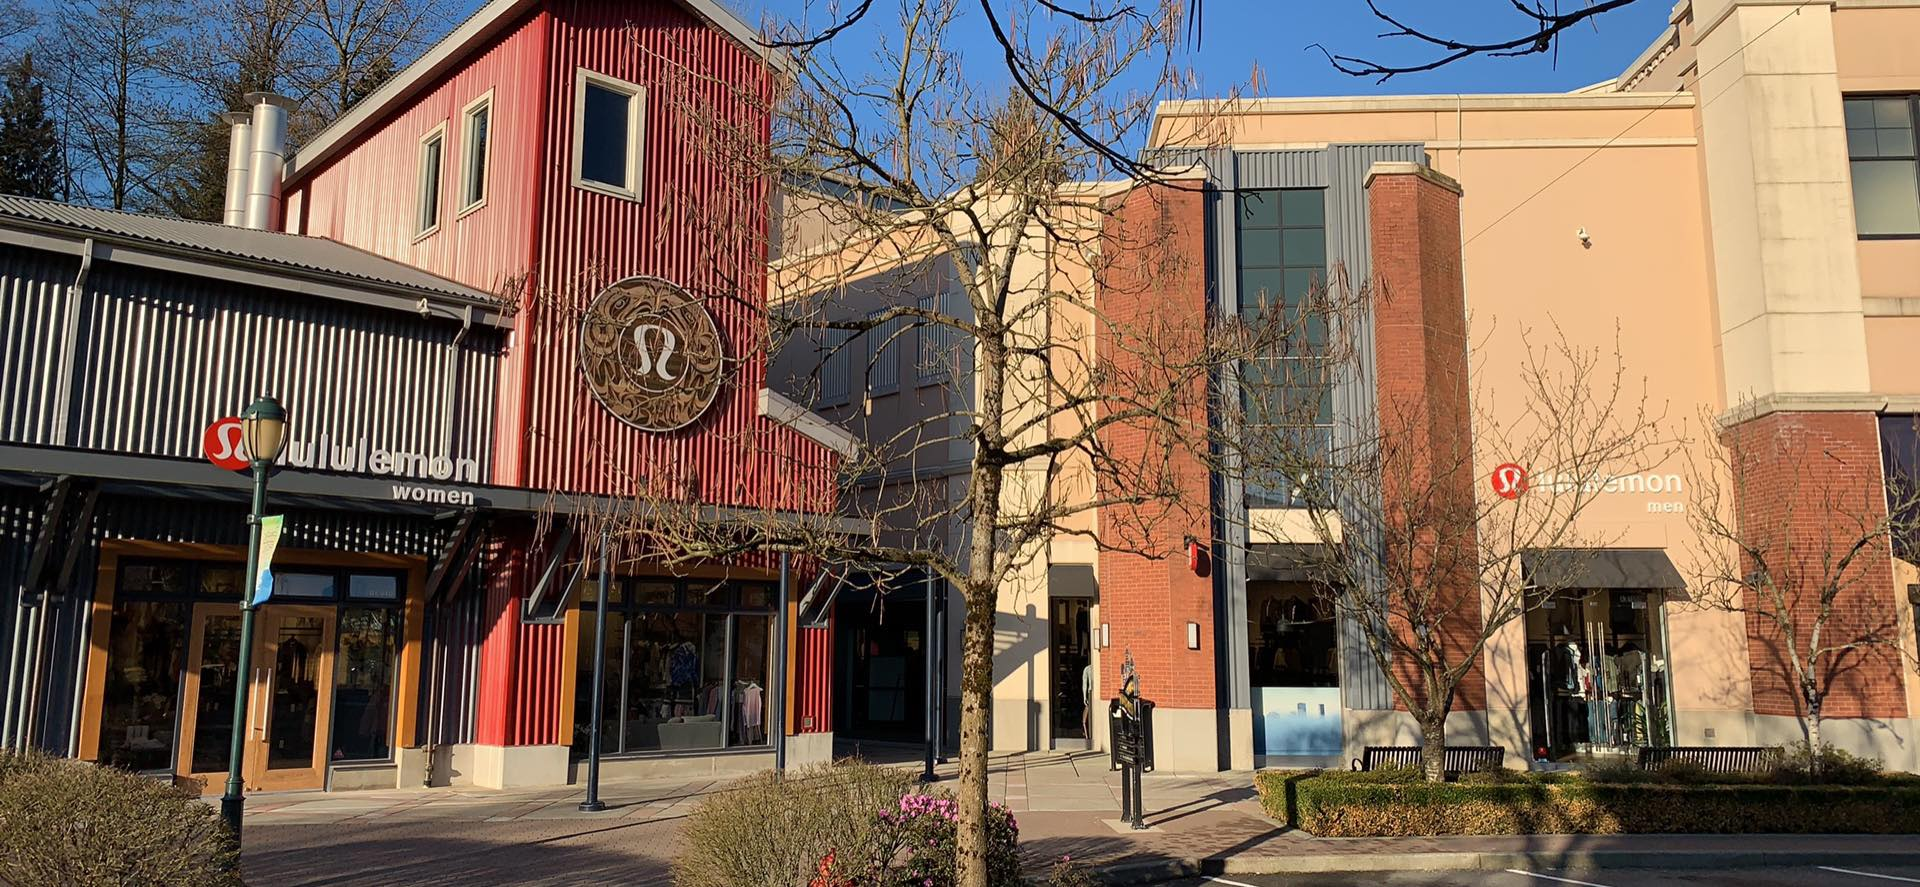 Lululemon (left) and newly opened Lululemon Mens (right) within The Village at Park Royal